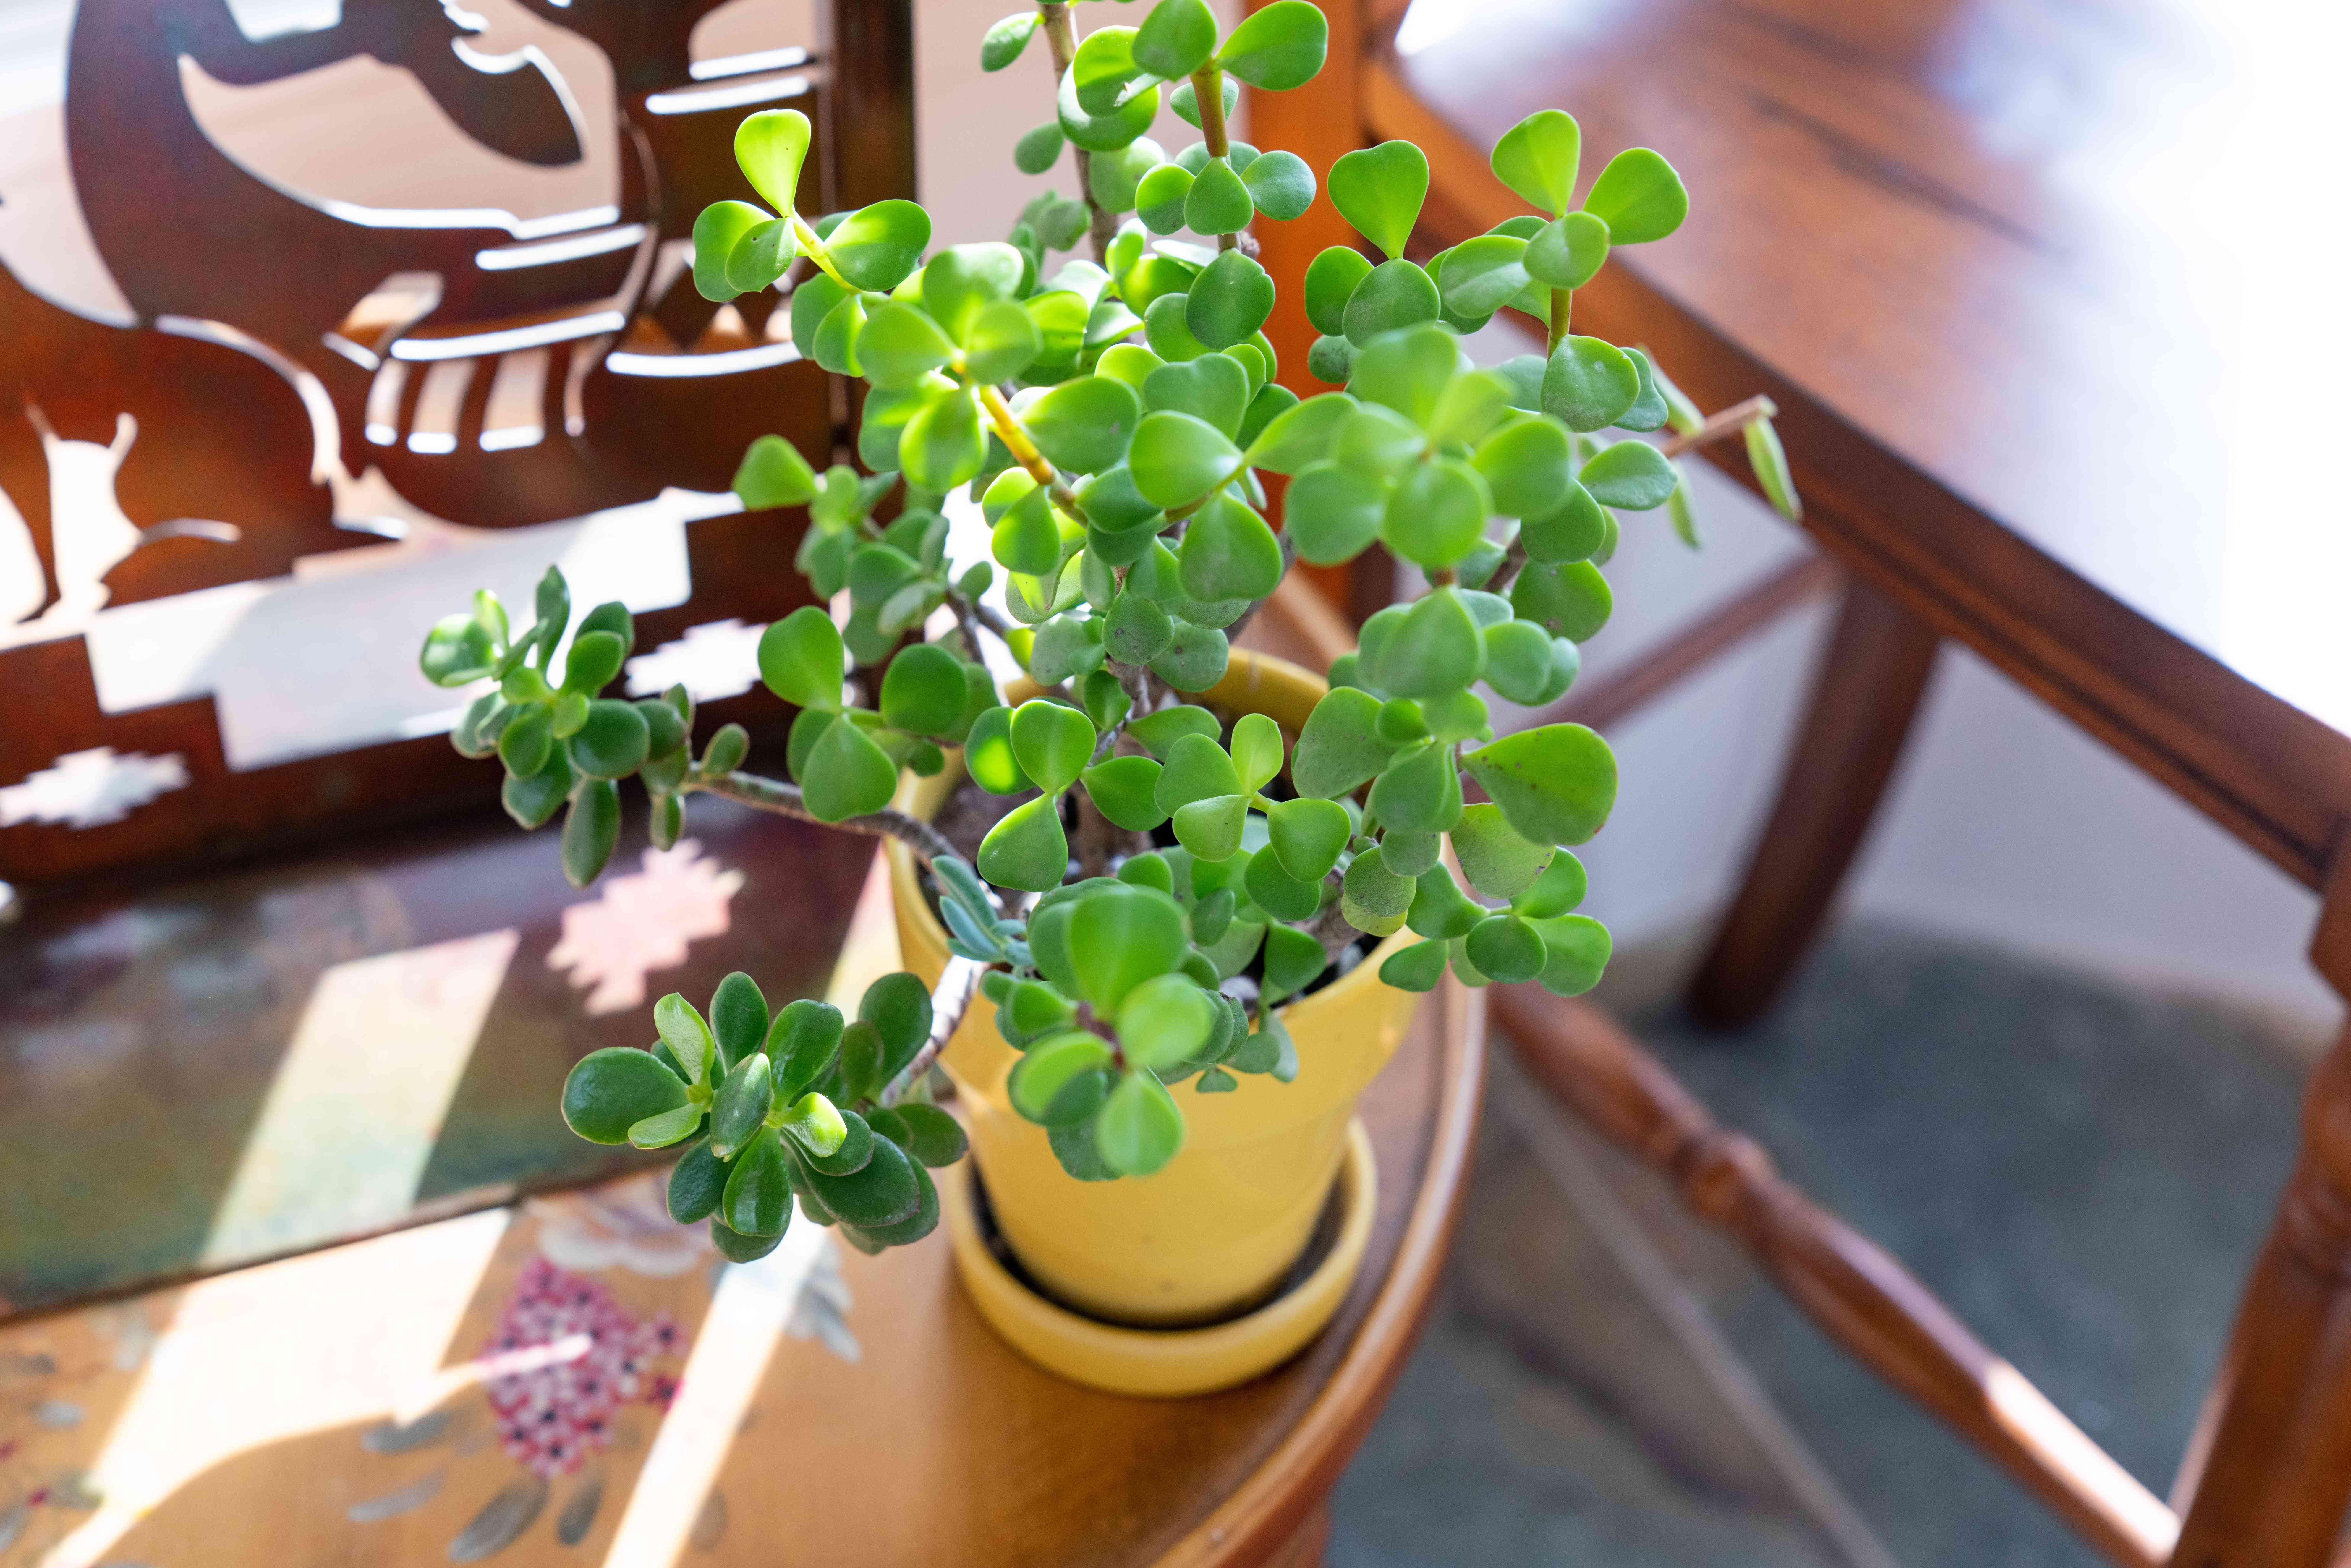 moving potted plants indoors for the winter